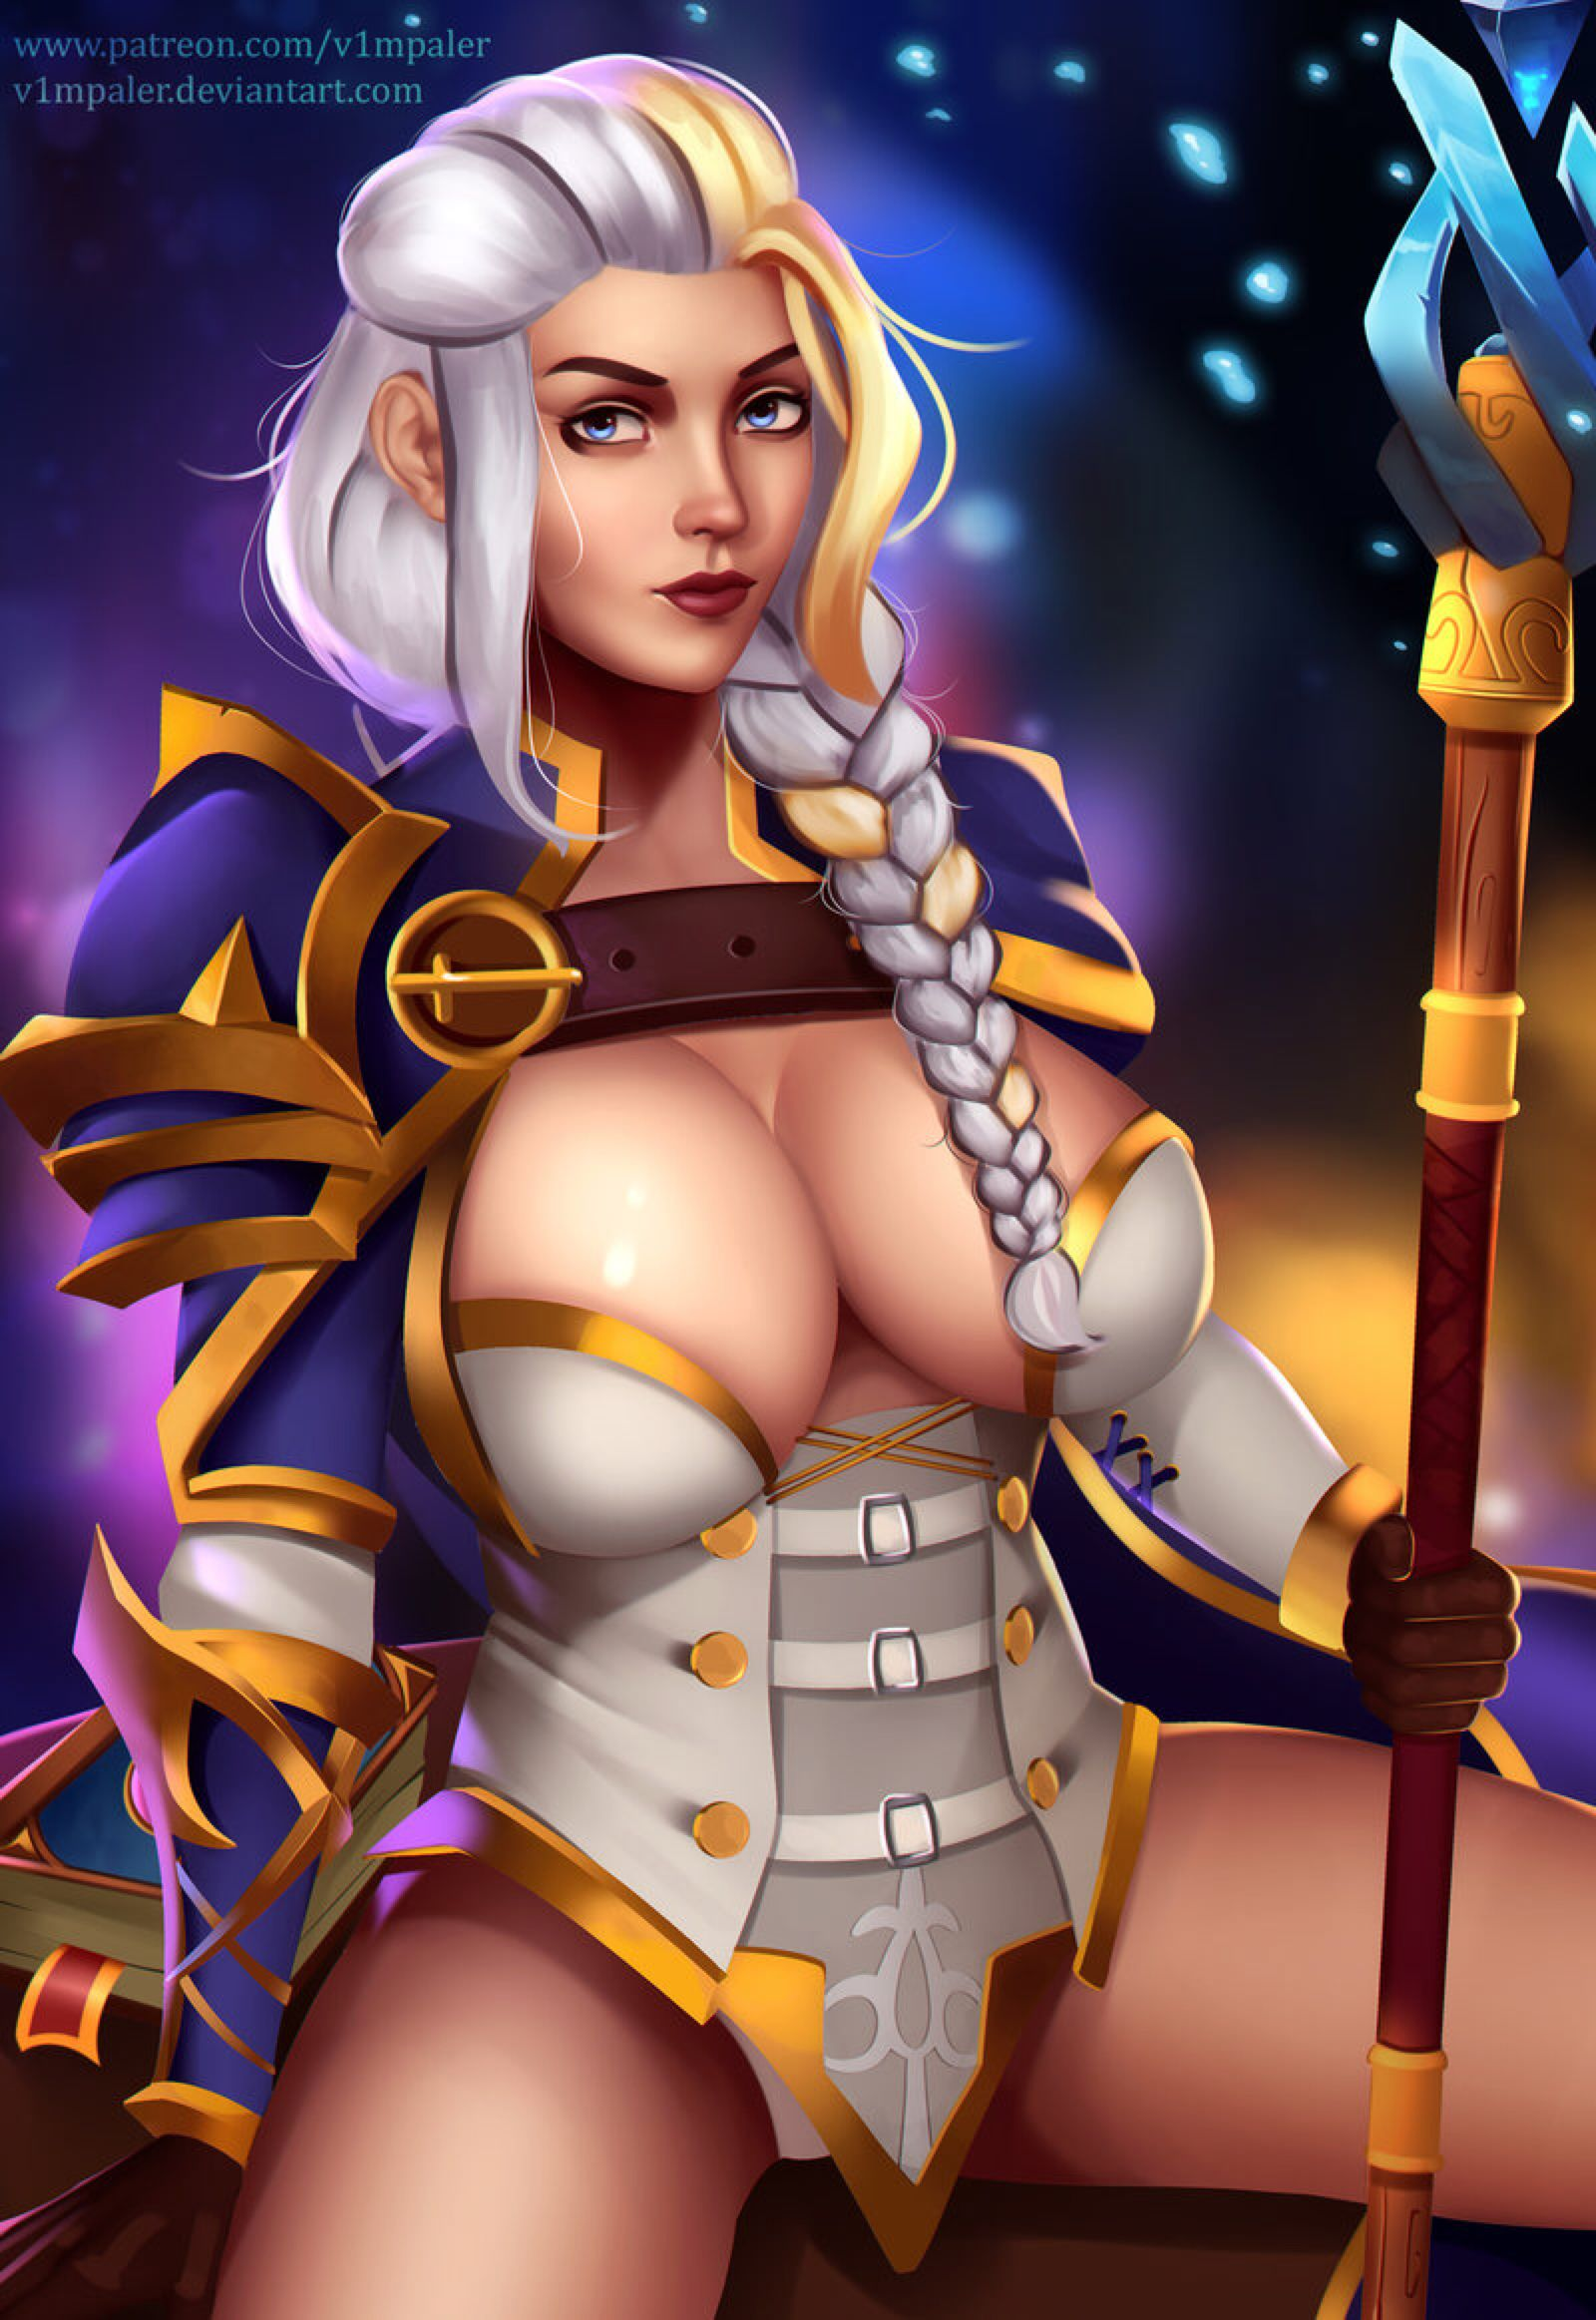 Warcraft fan art nude